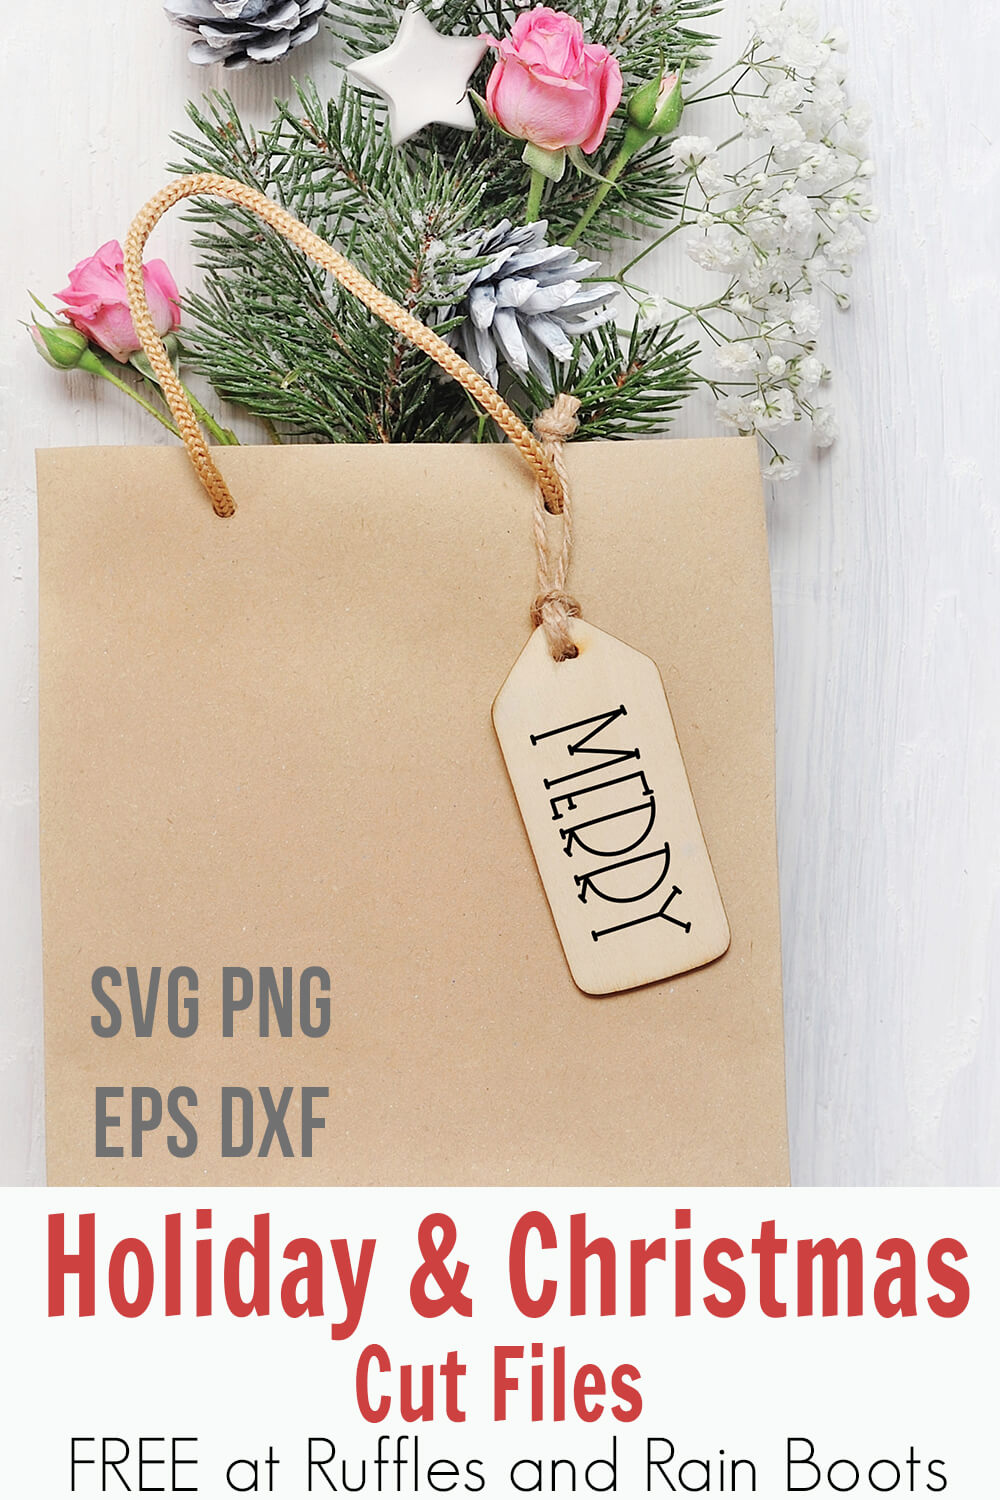 playful merry christmas free svg on a gift tag with text which reads svg png eps dxf holiday & christmas cut files